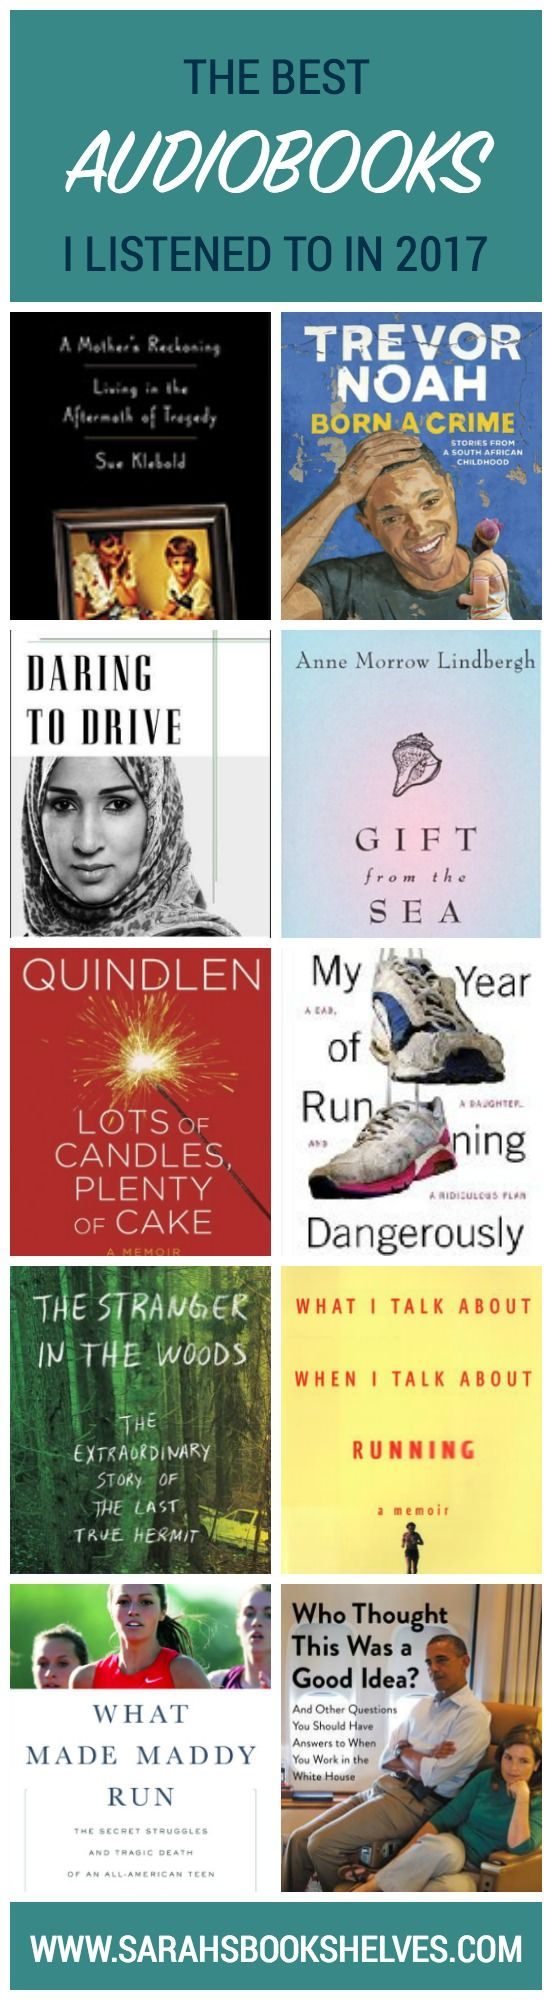 Audiobooks are a relatively new addition to my reading life, but I'm now confident enough to put together a Best Audiobooks I Listened to in 2017 list! I only listen to lighter nonfiction, so that's what you'll find here. #reading #book #bookish #bookworms #booklovers #booklist #bestbooks